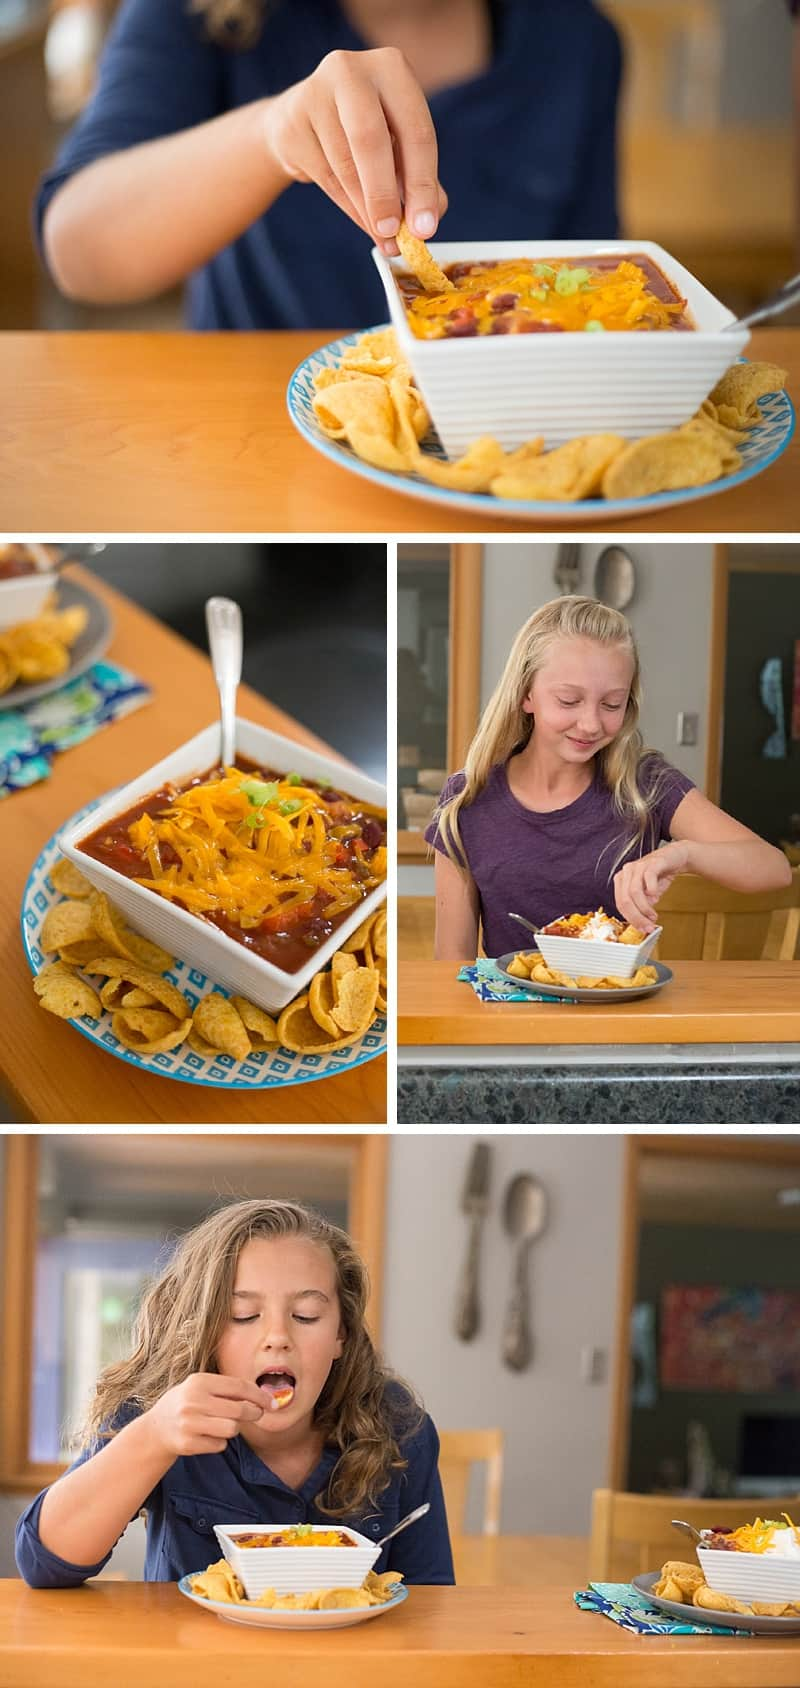 Best chili EVER! This slow cooker recipe is so SIMPLE to make. You can use ground beef, steak or go vegetarian. It is perfect for a quiet evening at home or for hosting a family party. Plus you can freeze leftovers for an easy weeknight dinner on a school night. *This is one of my go-to dinners that the whole family loves. Perfect comfort food. So good with corn chips!